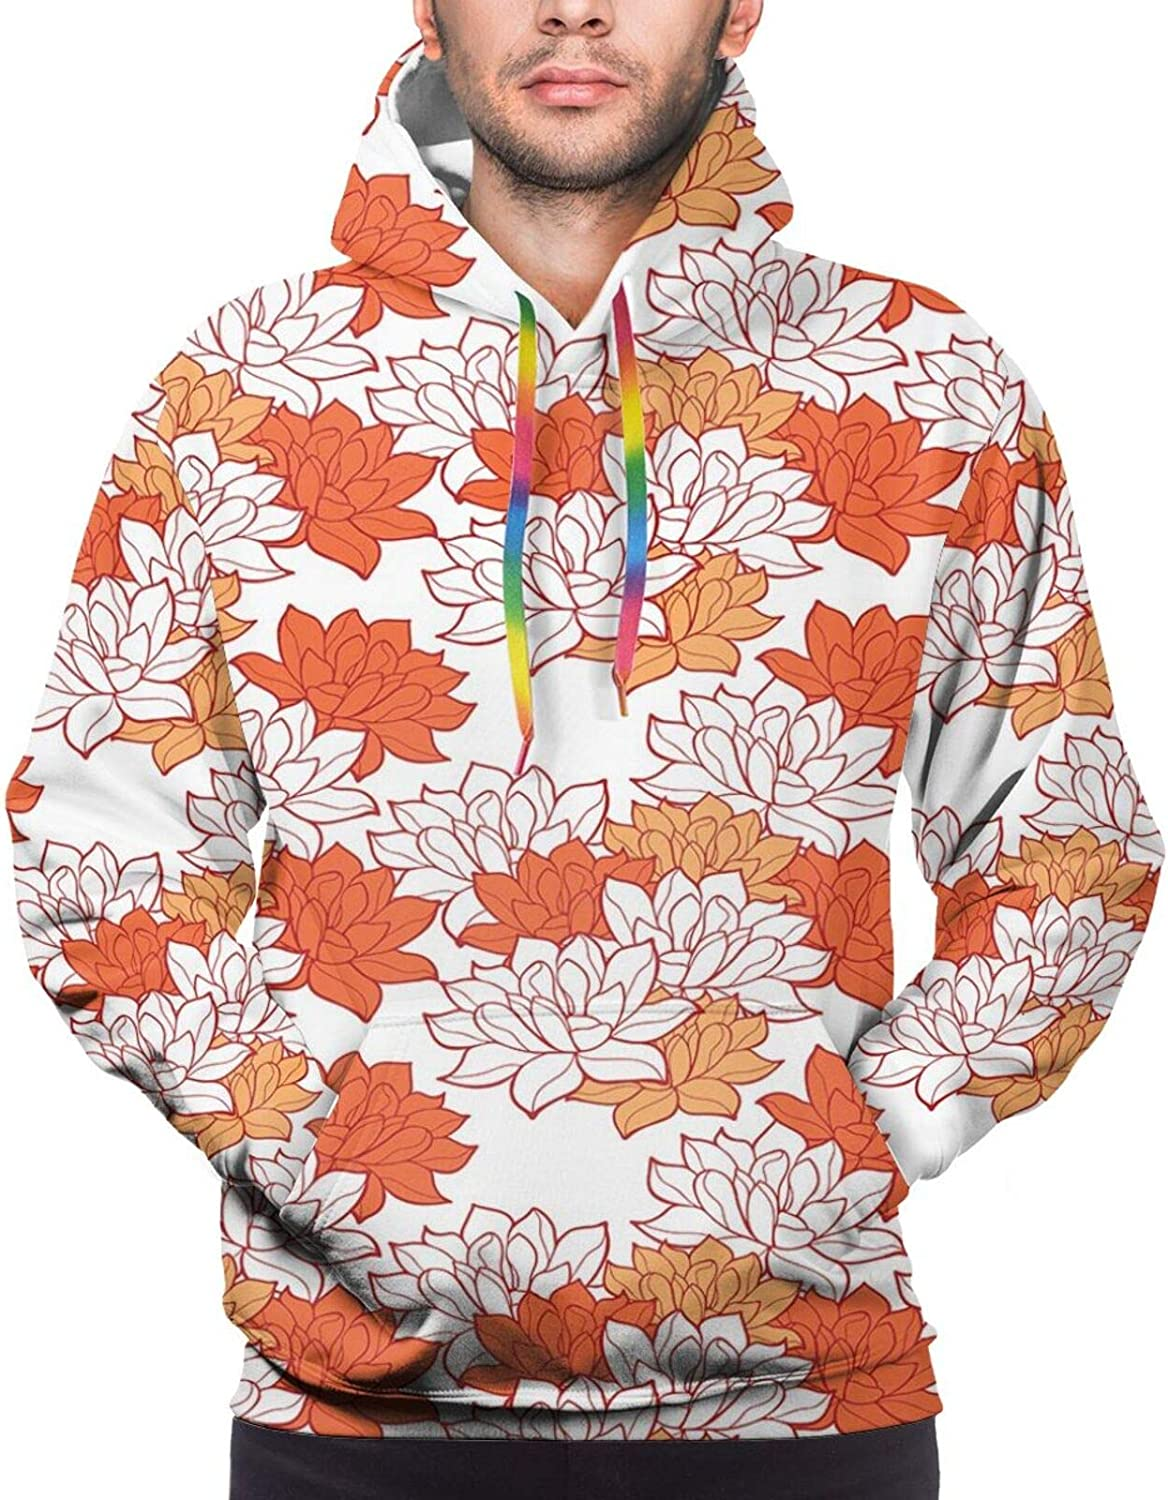 Men's Hoodies Sweatshirts,Blossoming Flowers with Sketch Buds and Leaves On Beige Background